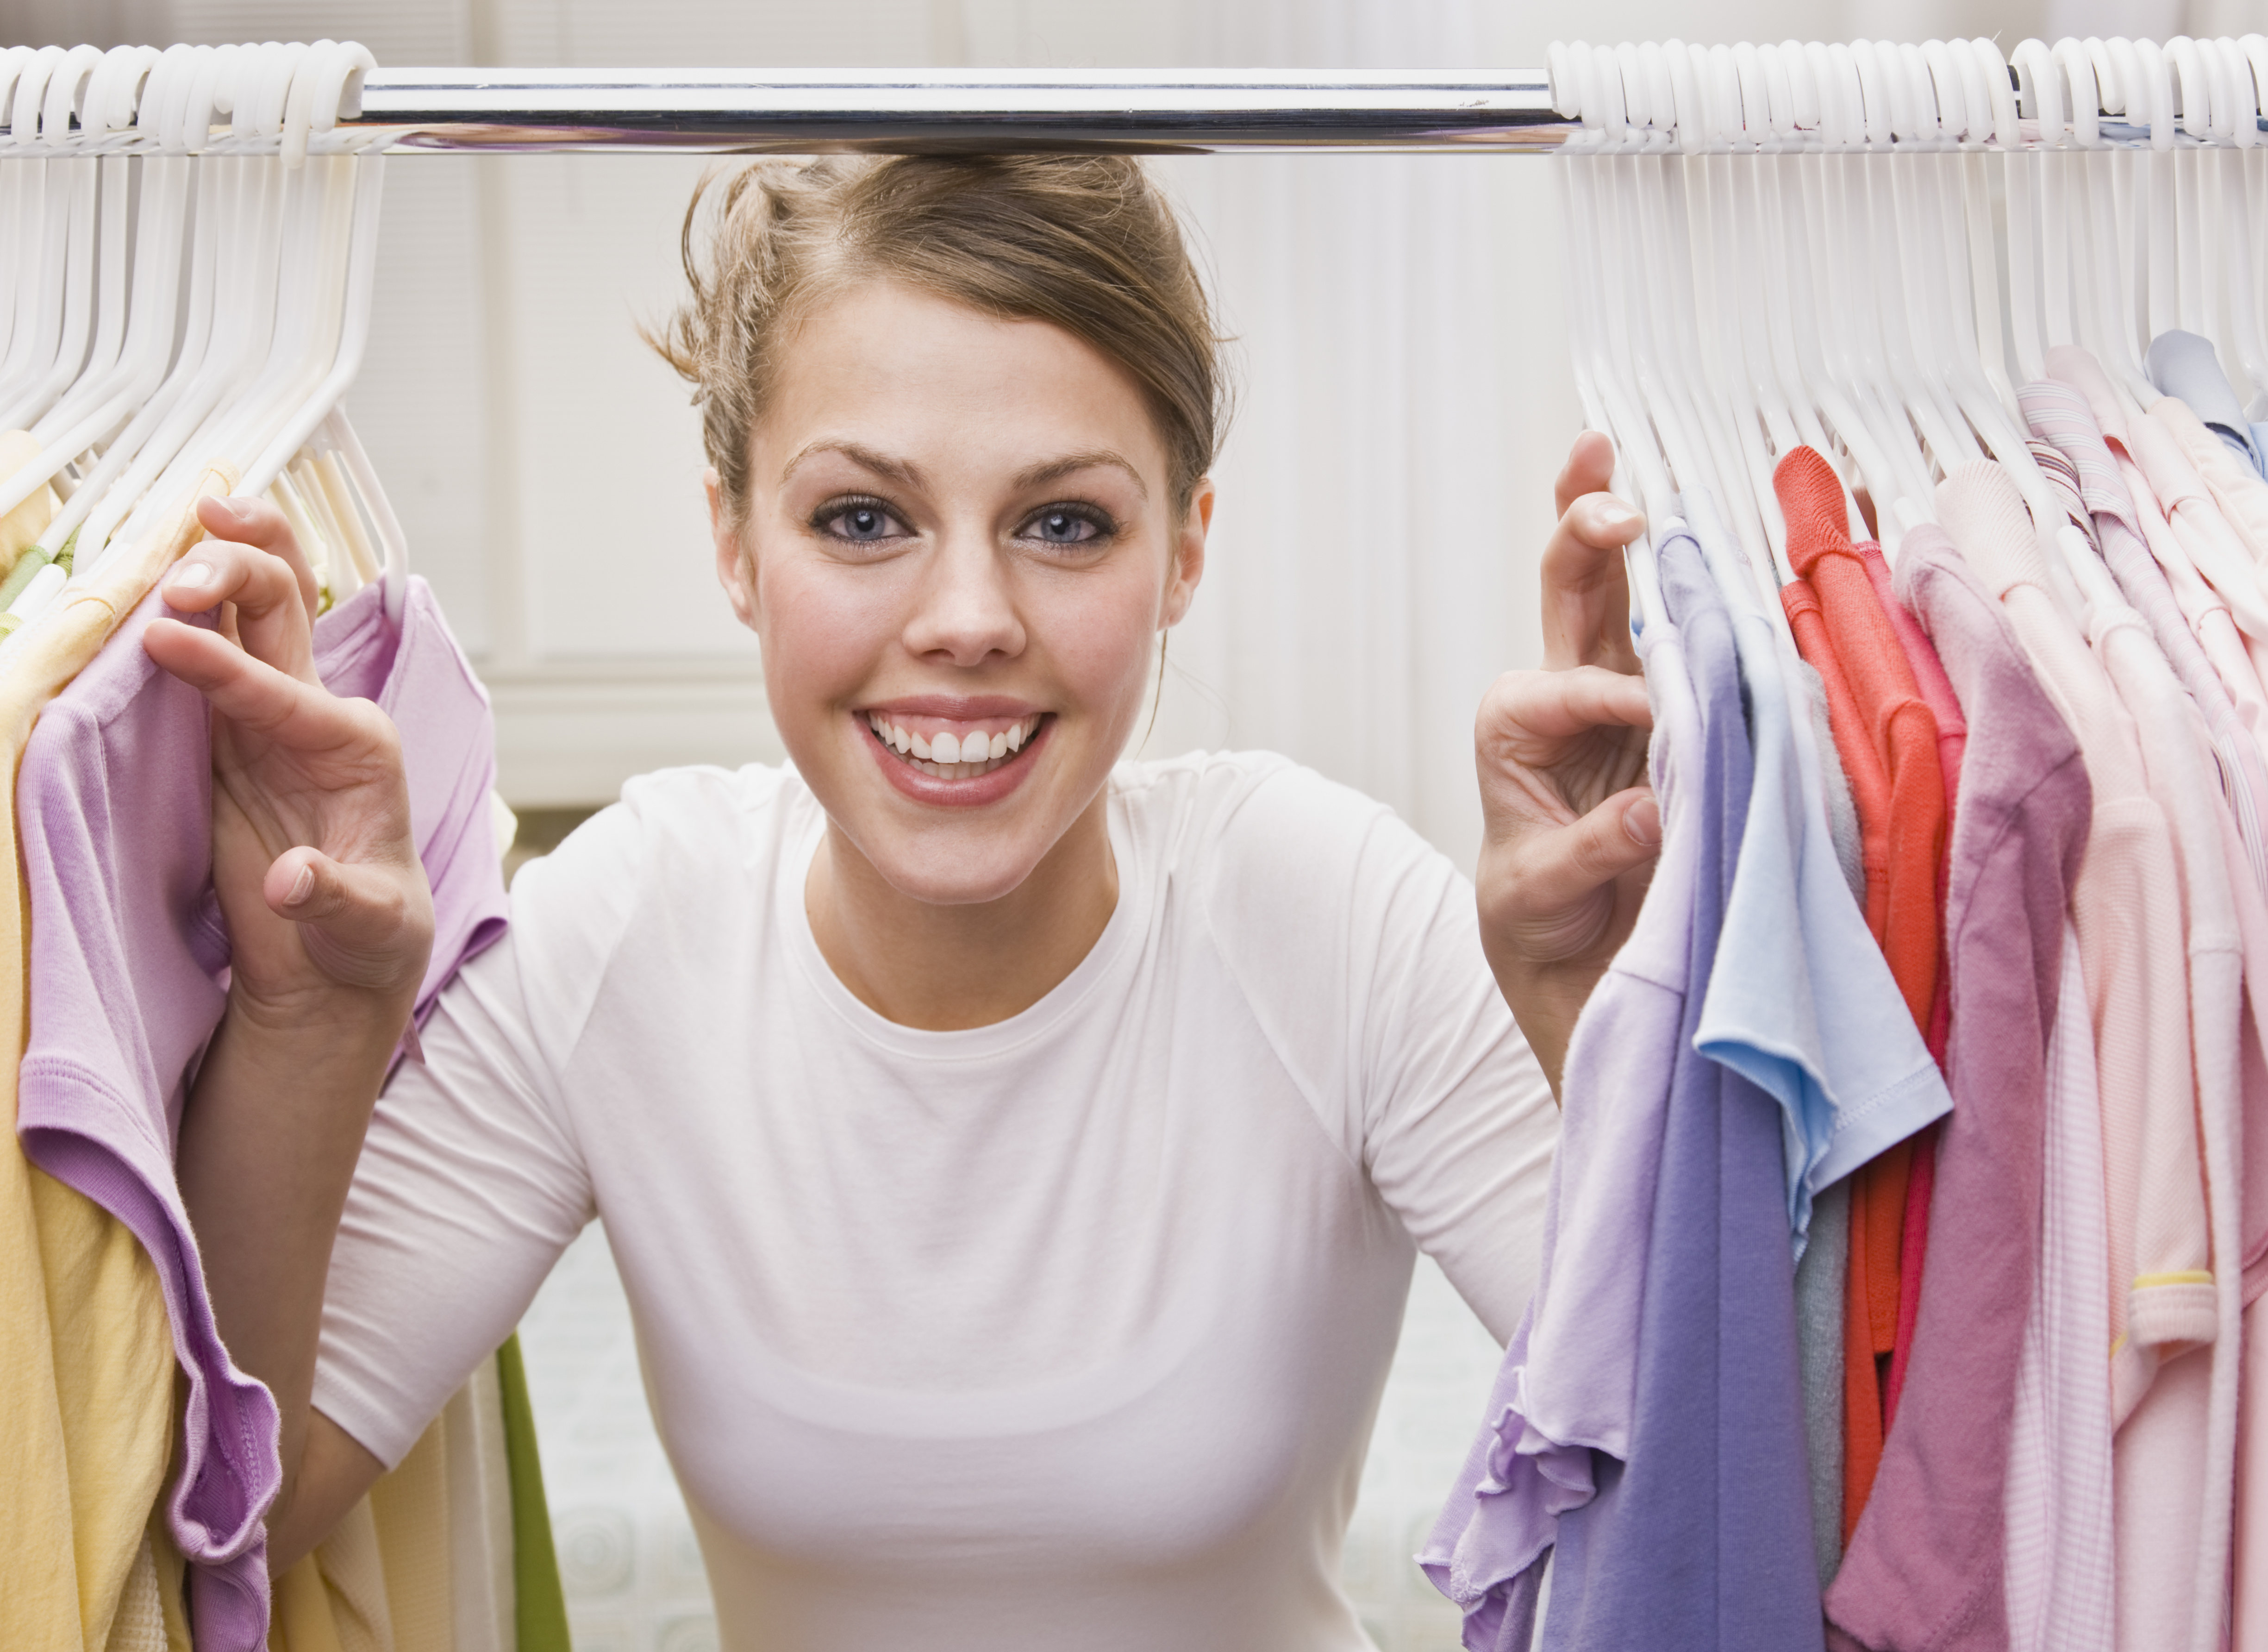 f7aab08868 How to Make Your Wardrobe Part of Your Self-Care